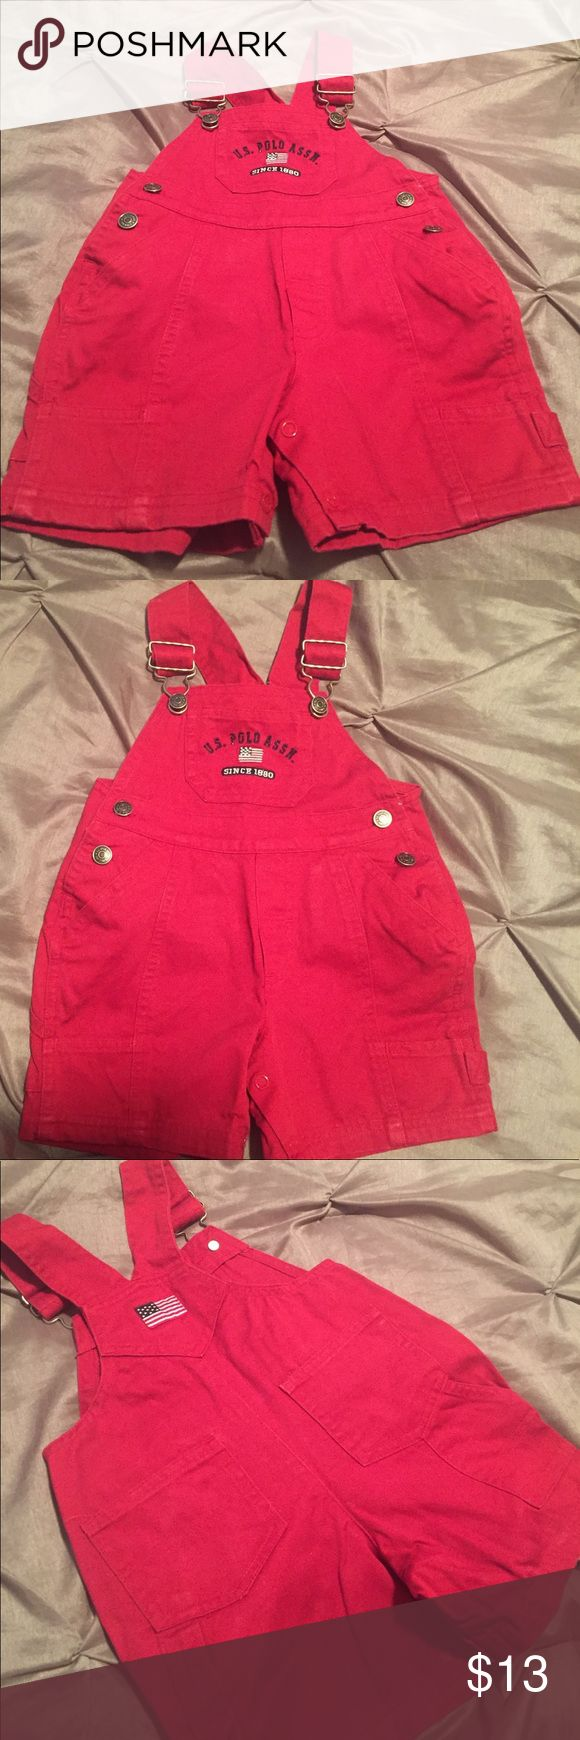 Baby Polo Overalls Polo Red Overalls w/American Flag - No Stains Great Condition U.S. Polo Assn. Other